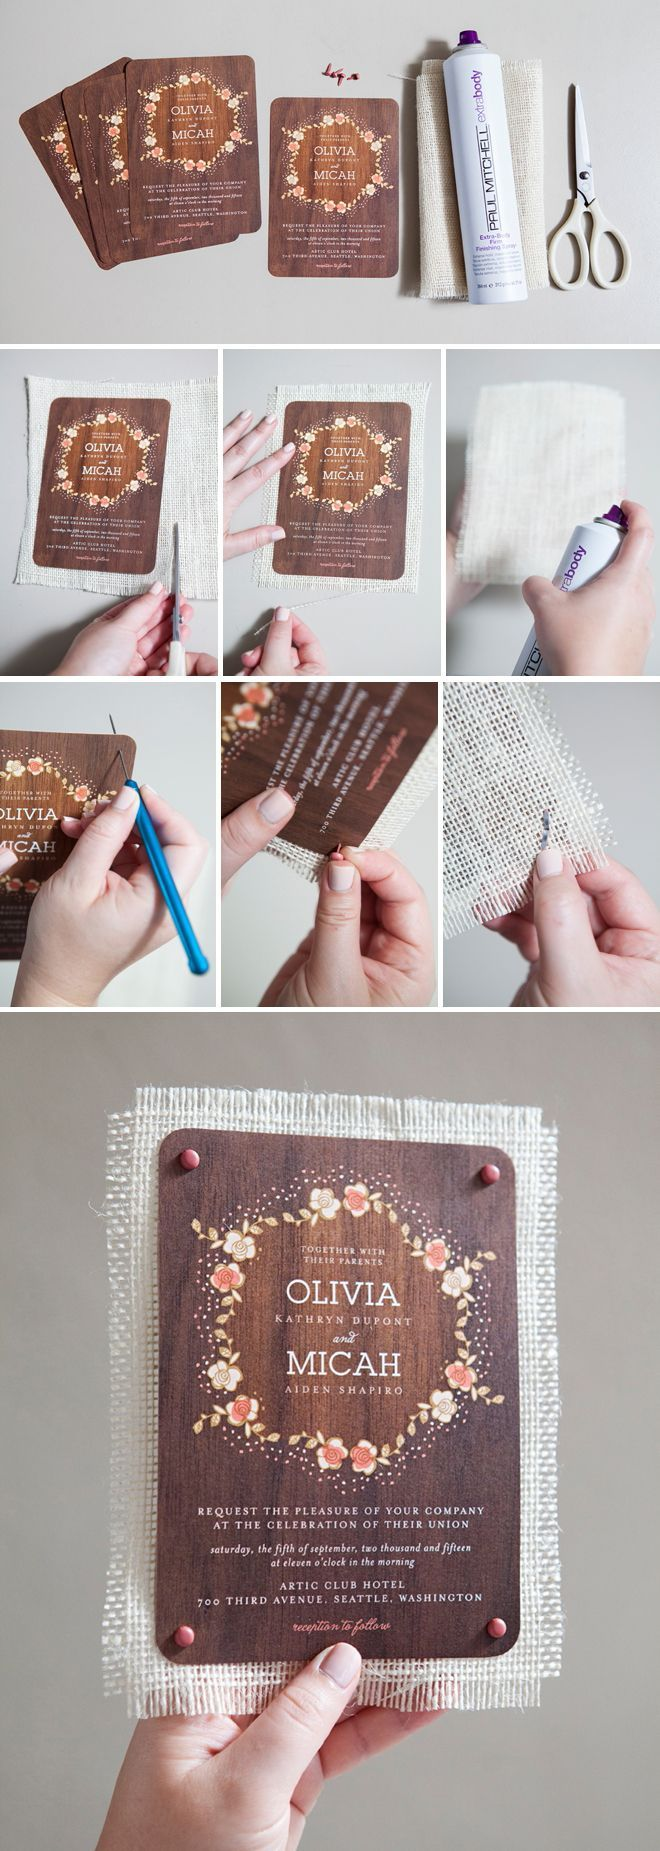 DIY Wedding // How to mount your wedding invitation on burlap! Hairspray is the trick!